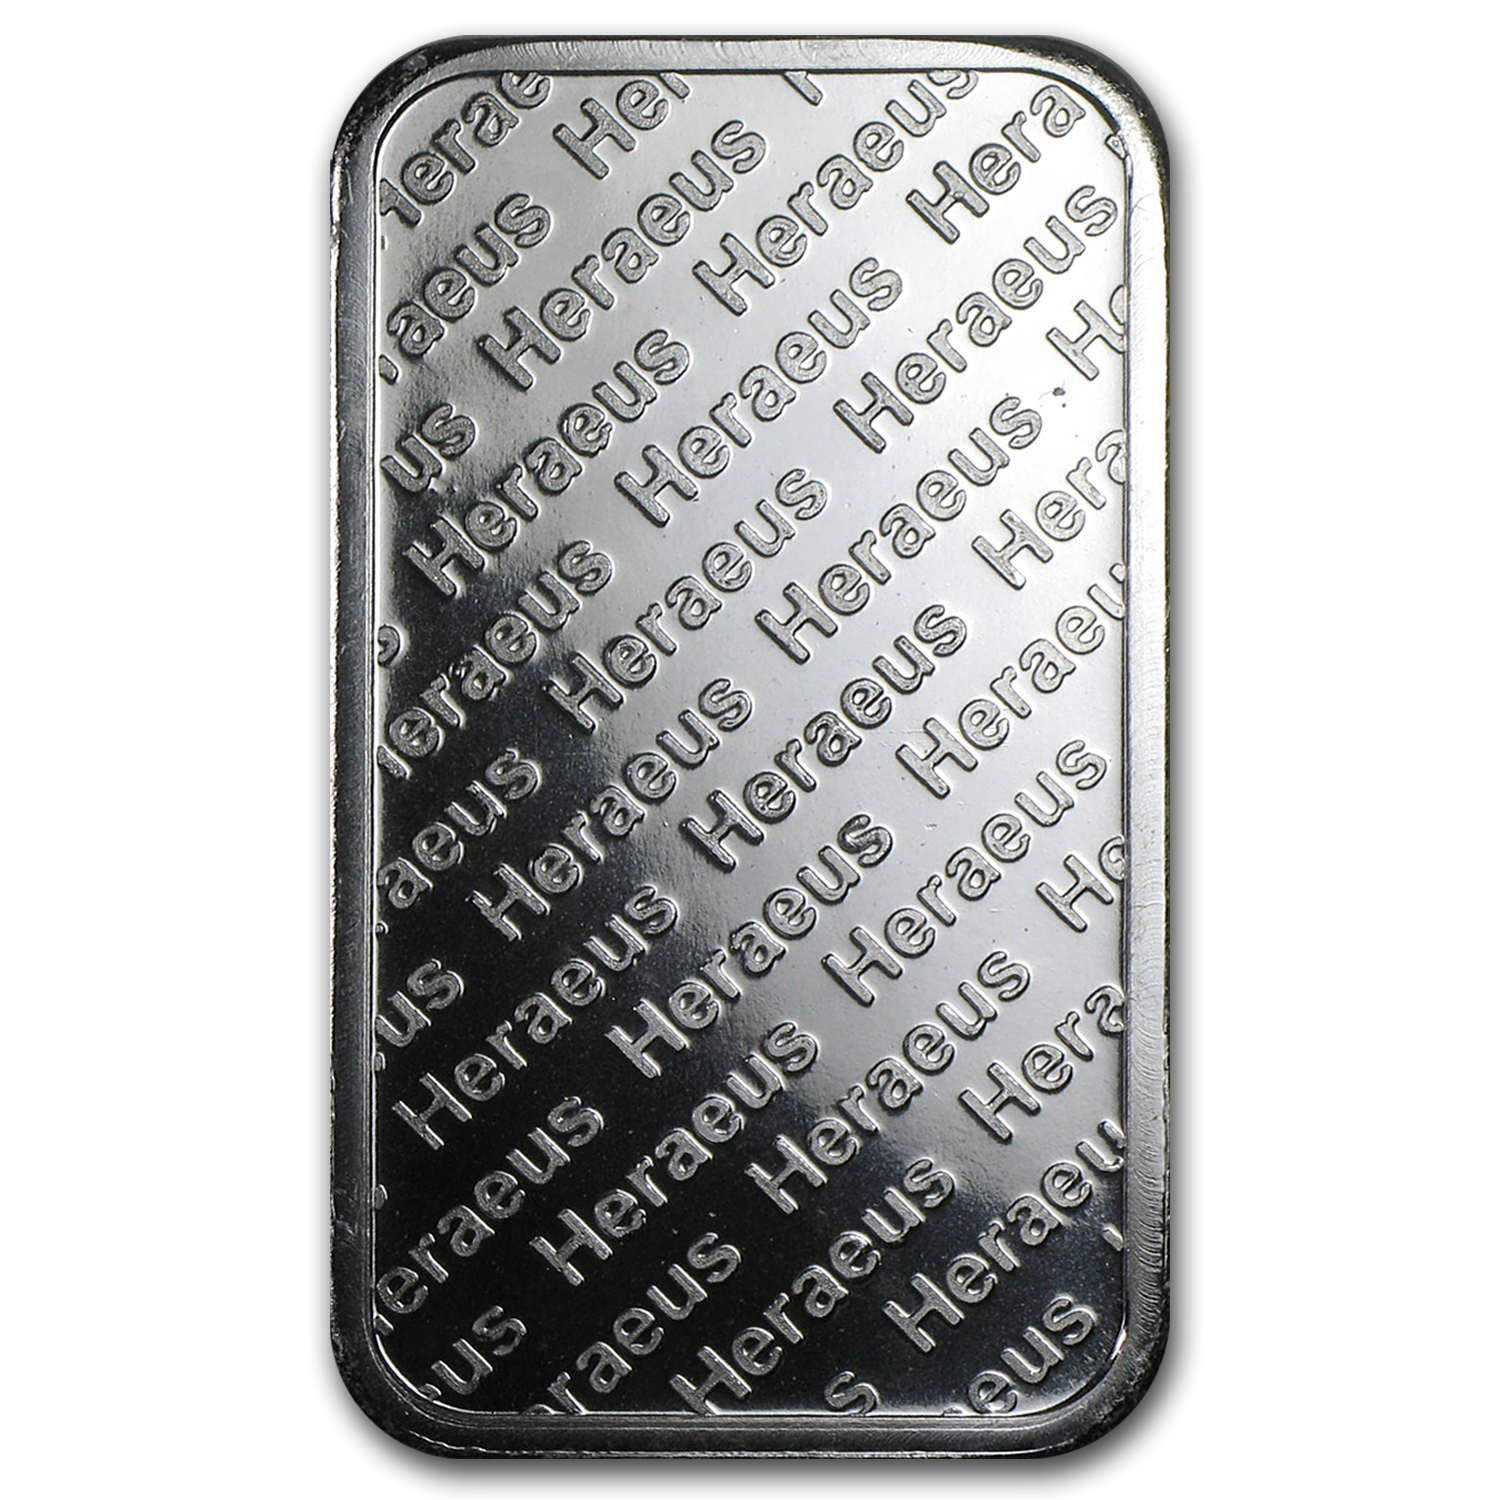 1 oz Silver Bars - Heraeus (Pressed)